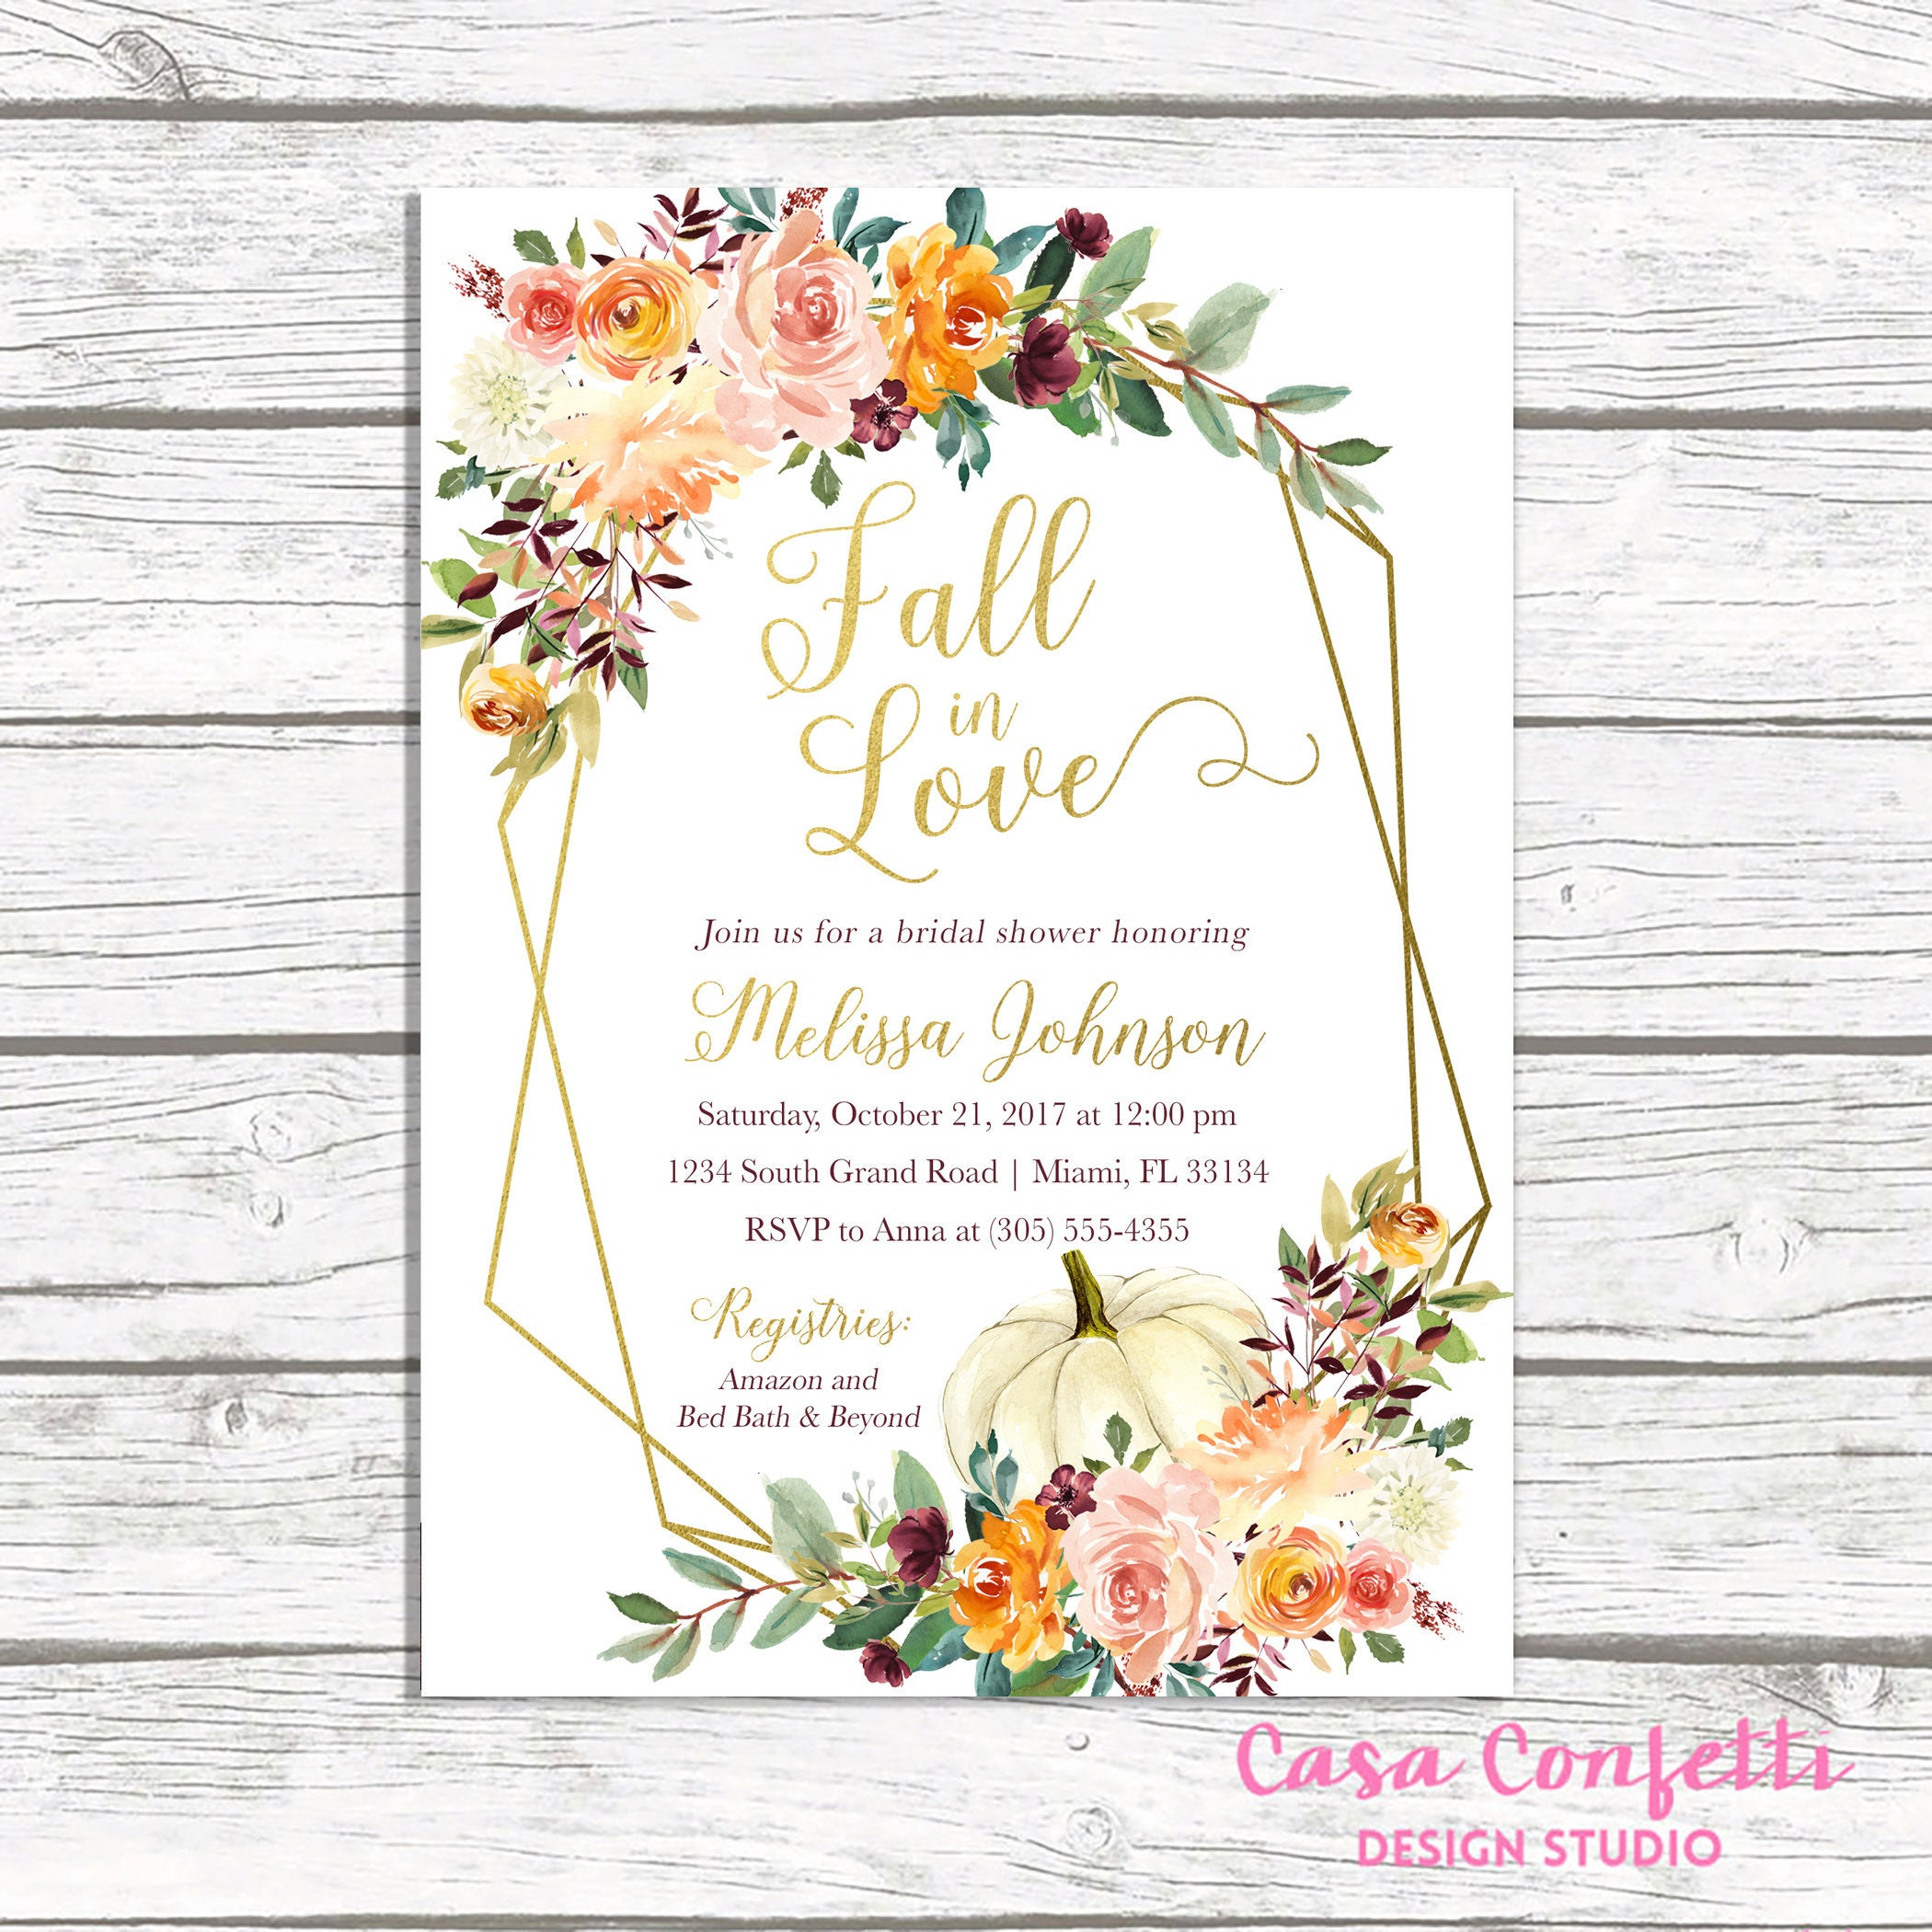 fall bridal shower invitation fall in love bridal shower invitation pumpkin bridal shower invitation falling in love bridal shower invite